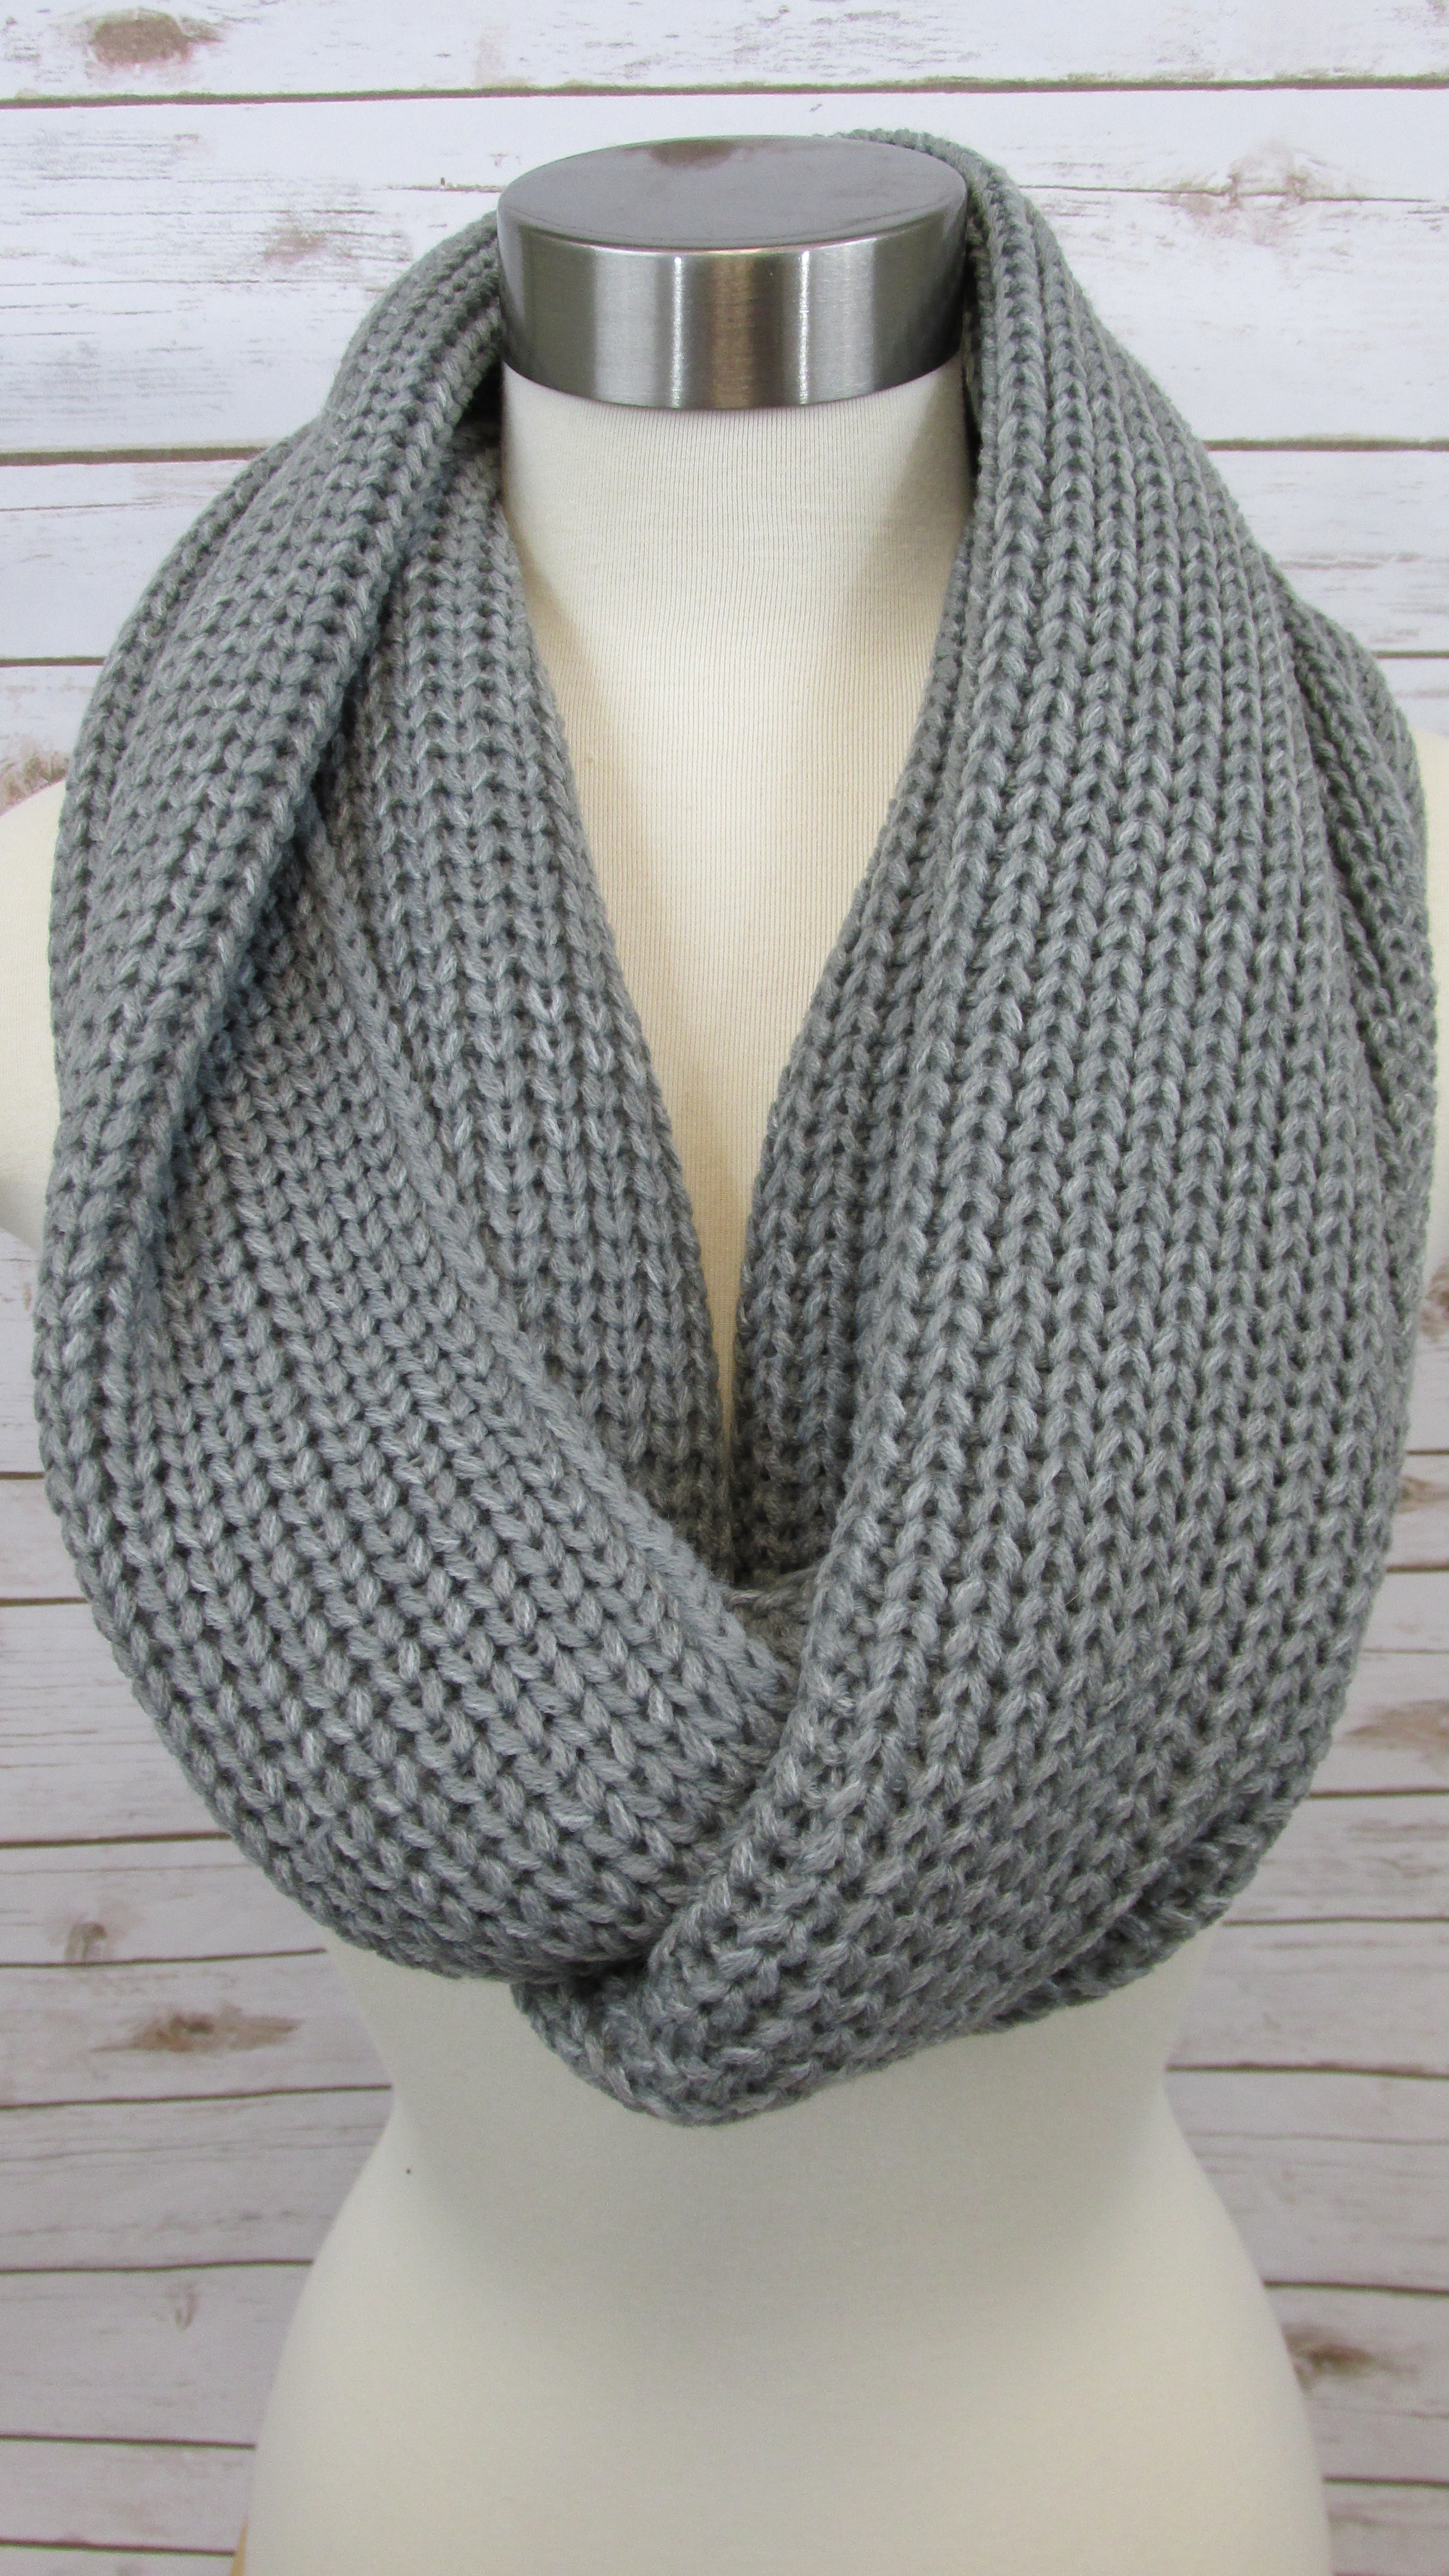 Shop Women's Scarves & Gloves at Forever 21 — find everything from satin square scarves to patterned oblong scarves, knit mittens to faux leather gloves & more. Related Searches infinity scarf. oblong fringe scarf. chenille hat scarf set. ornate satin scarf. equestrian satin scarf. Related Products.